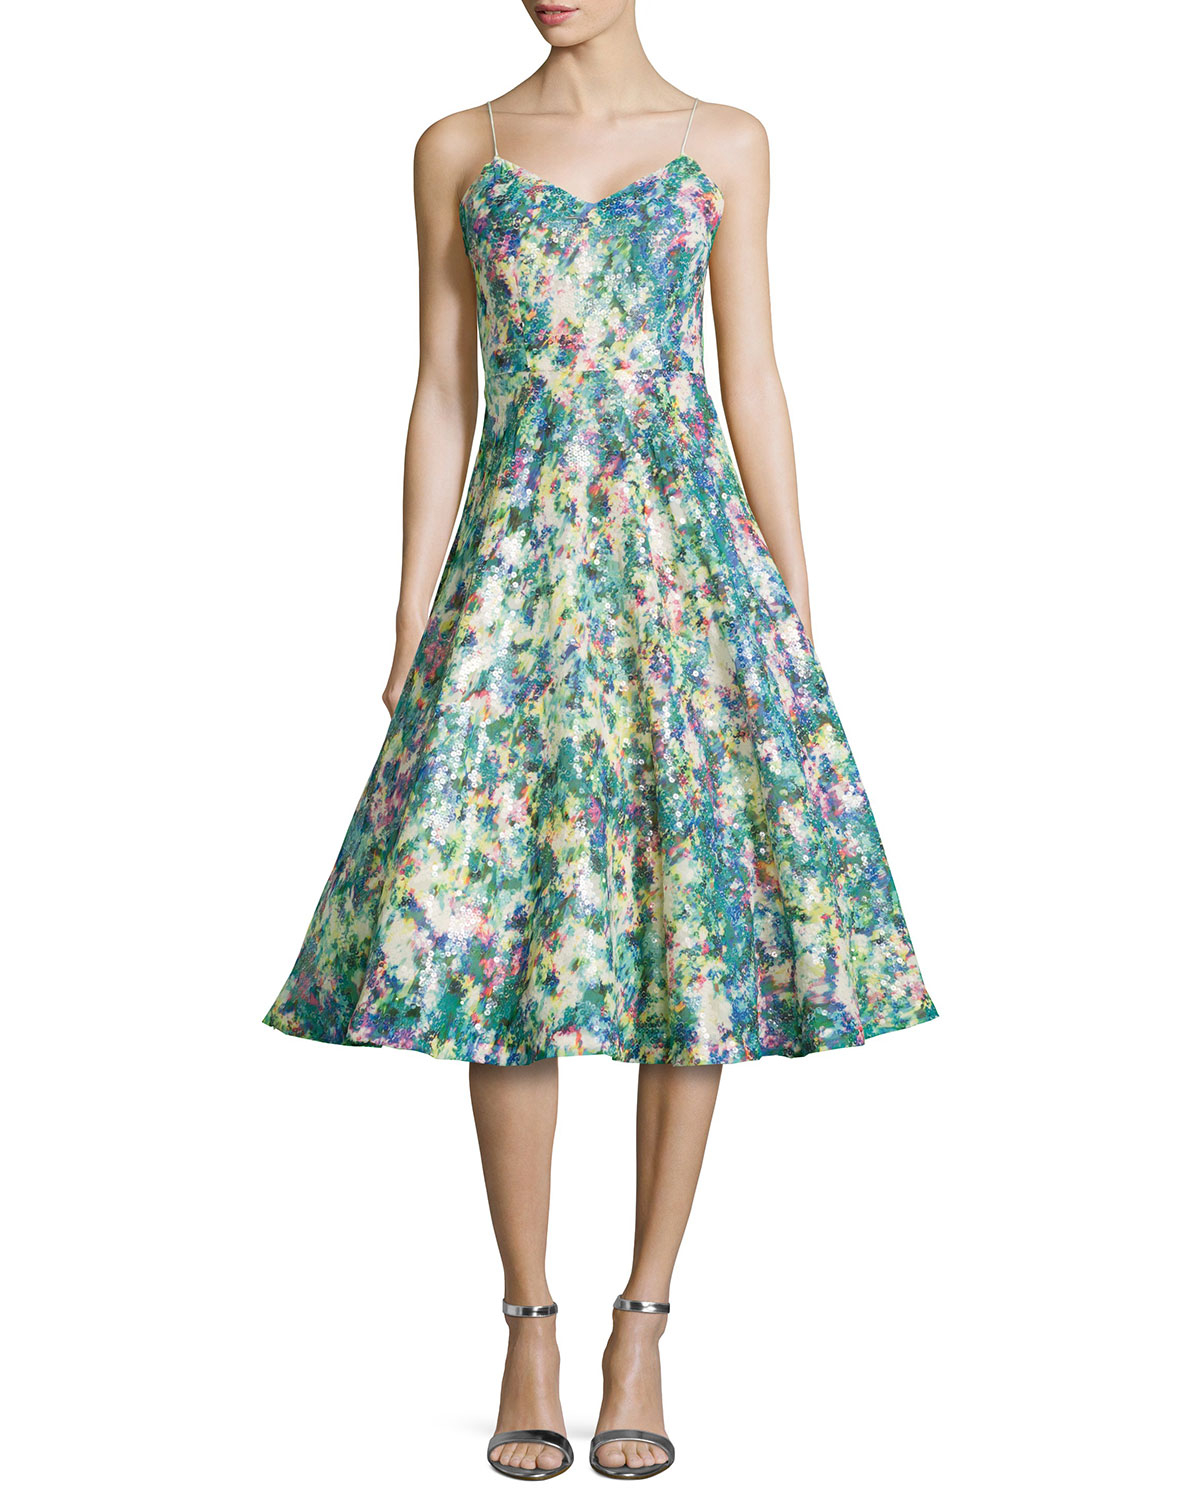 Tracy reese Sequined Floral-Print Full-Skirt Cocktail Dress | Lyst